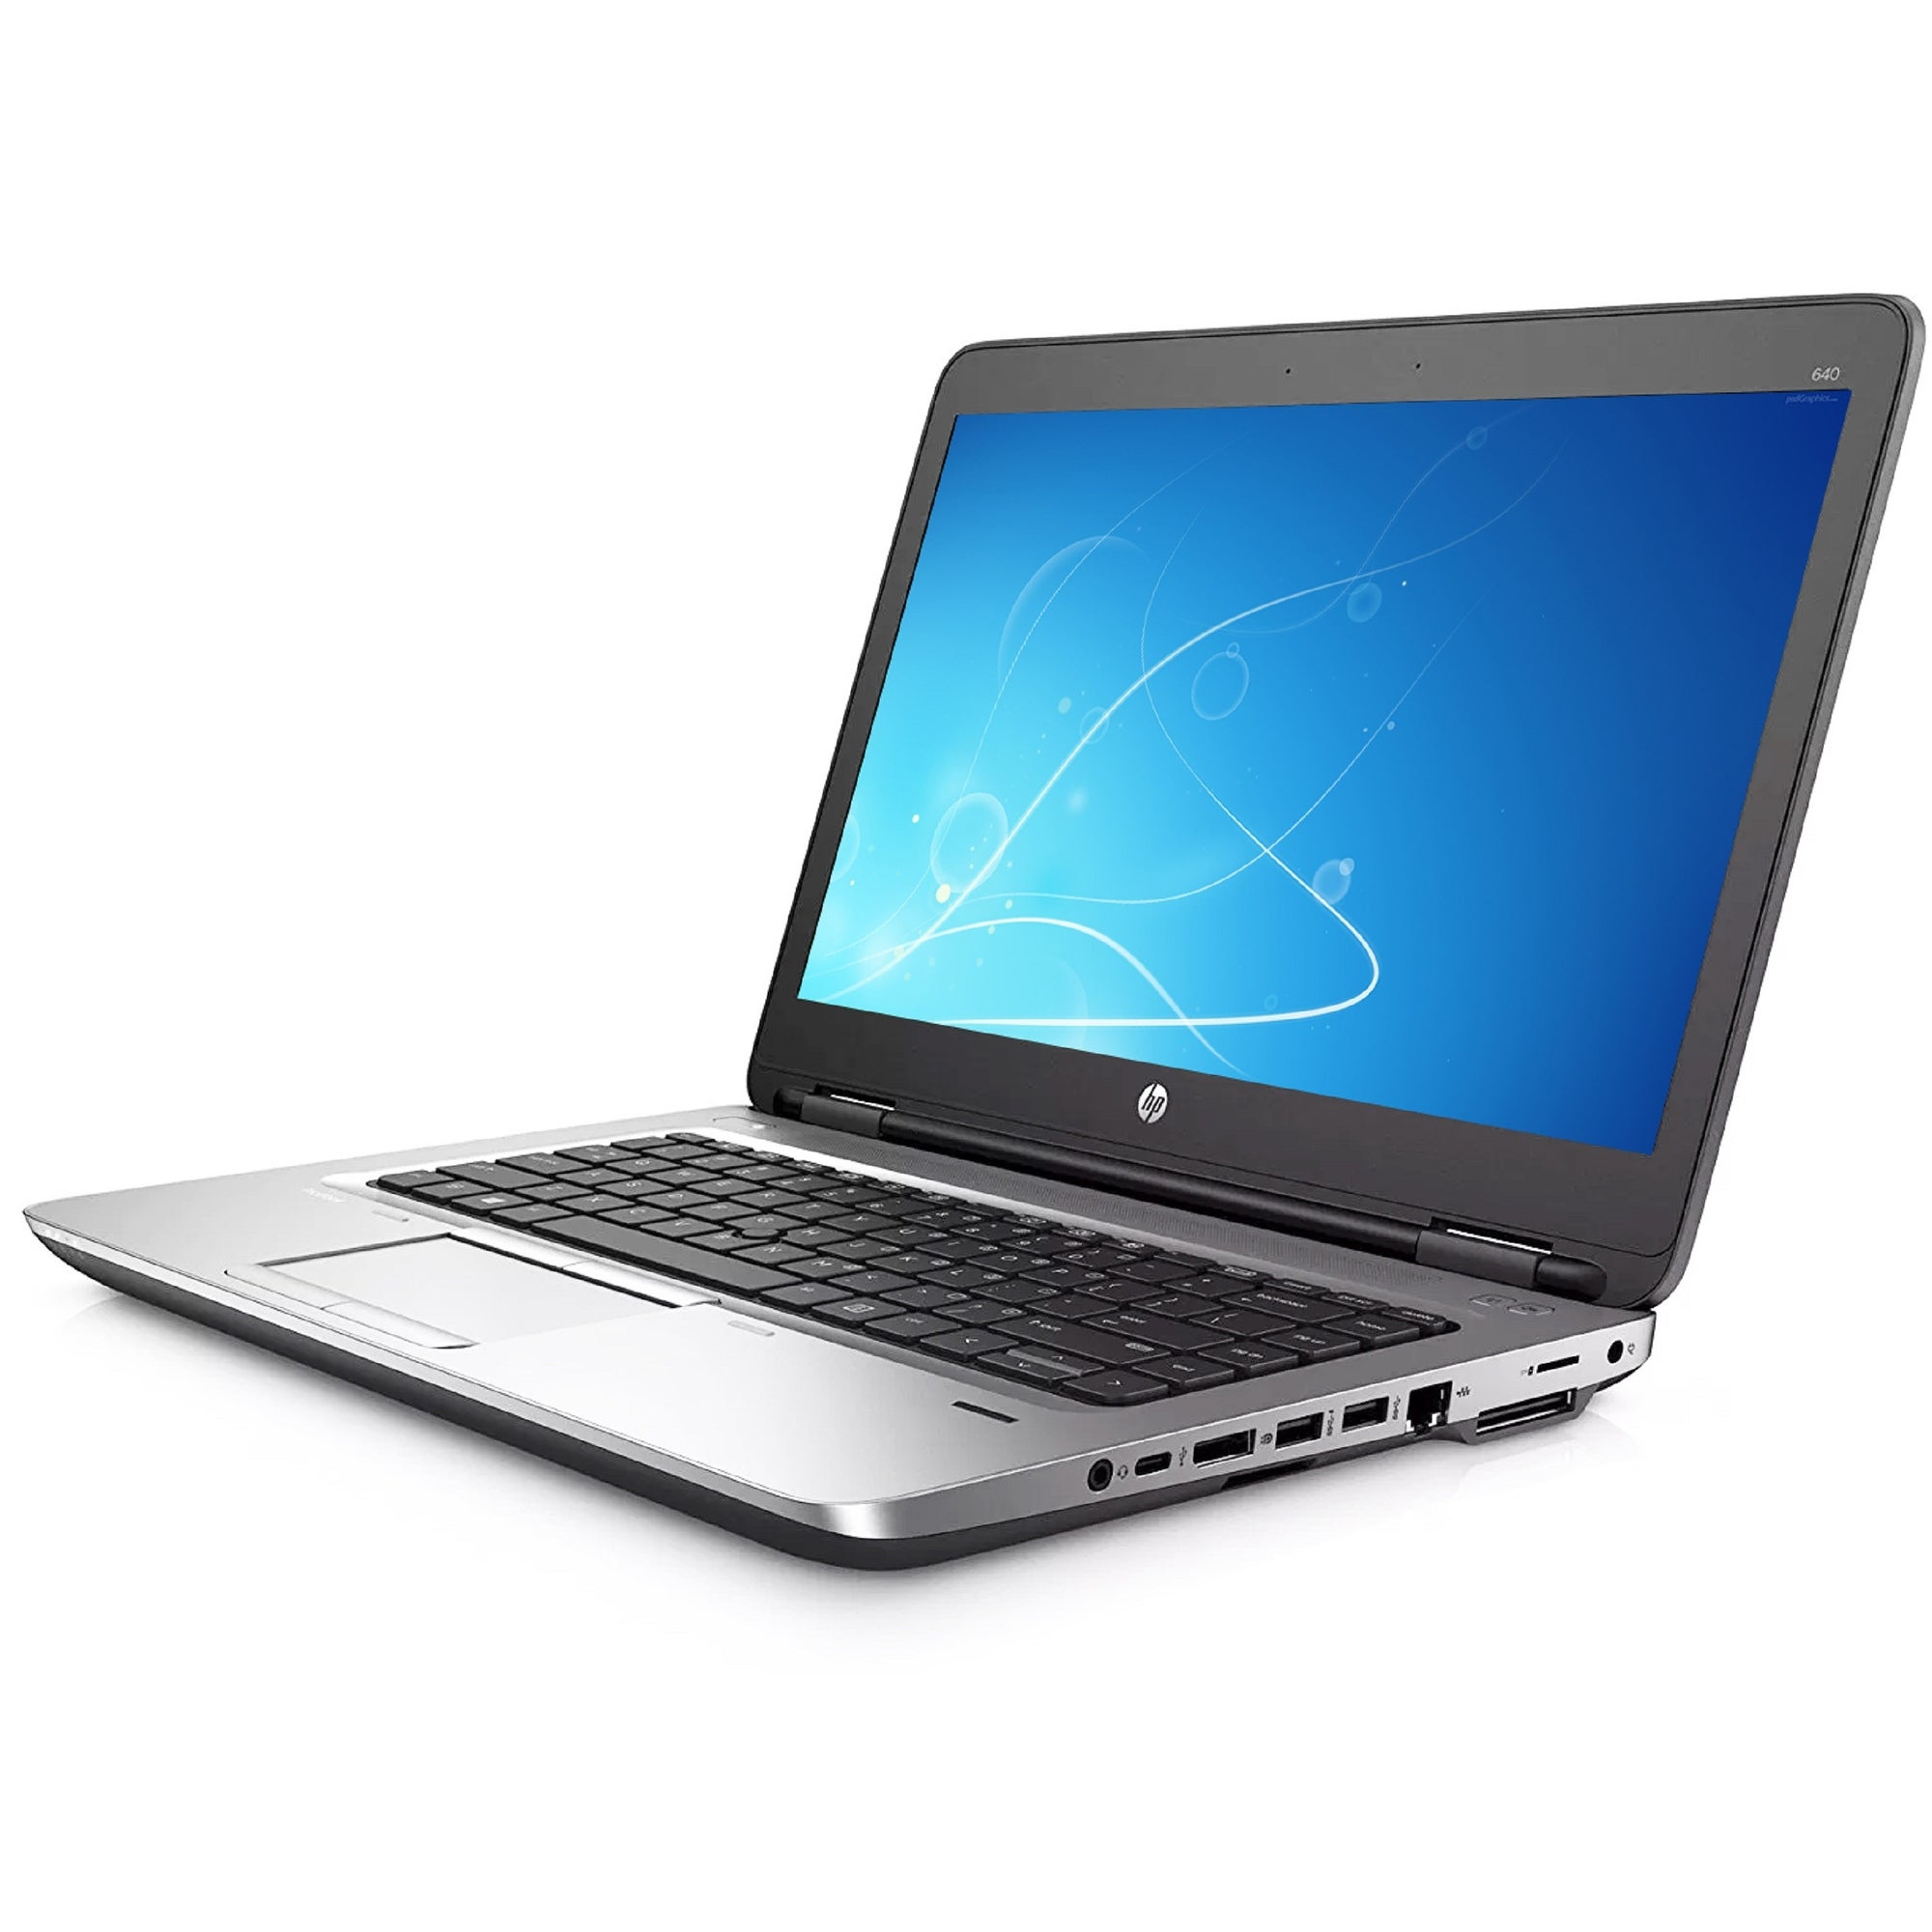 Shop Hp Laptop 640 Gen 1 Intel I5 Dual Core 4gb Ram 320gb Windows 10 Webcam Grade B Overstock 31309792